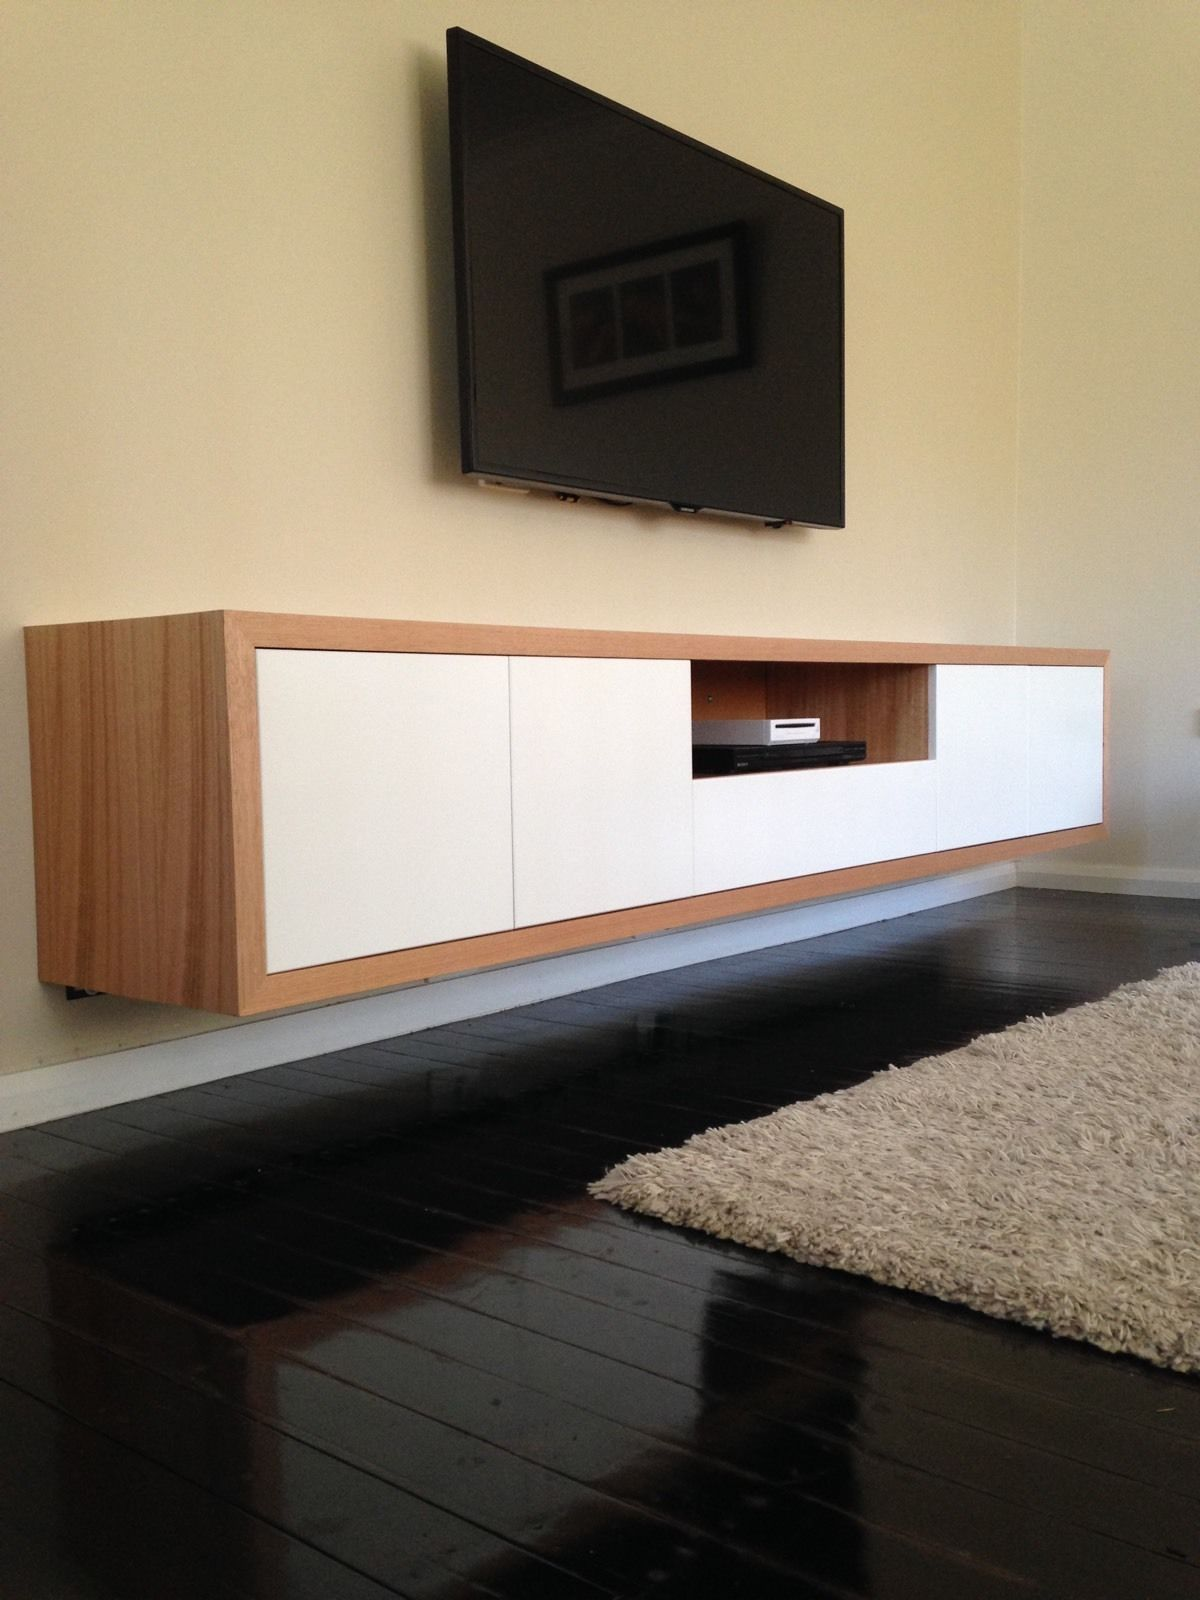 wall mounted tv cabinet 25+ Wall Mounted Entertainment Center Ideas & Design for Your Home  wall mounted tv cabinet